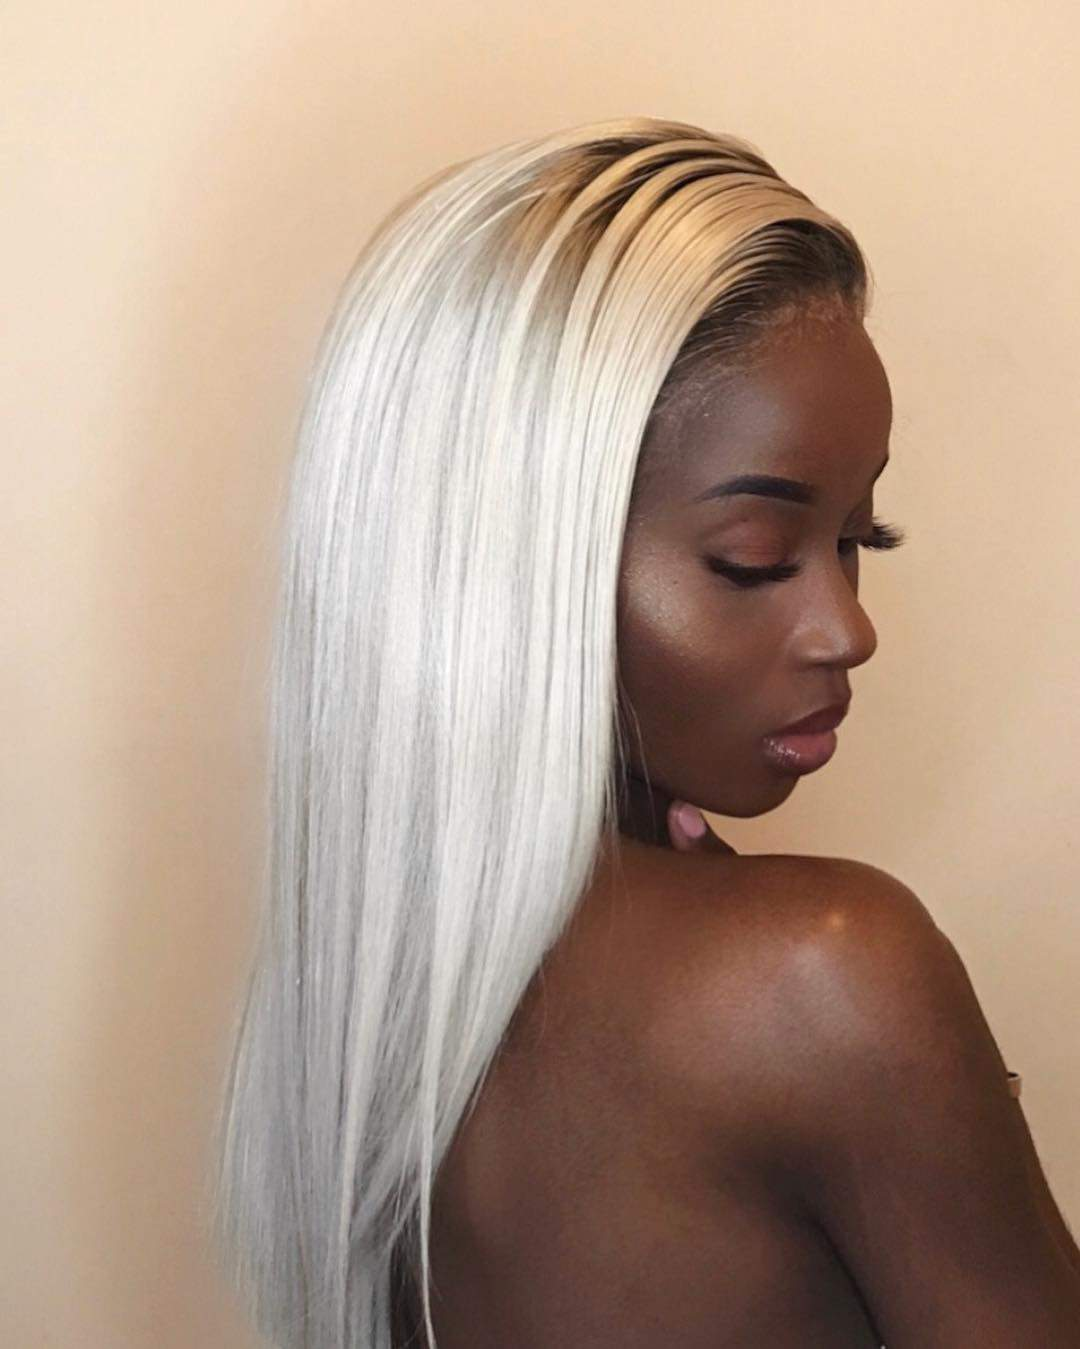 10 Hair Color Ideas For Blondes - Health